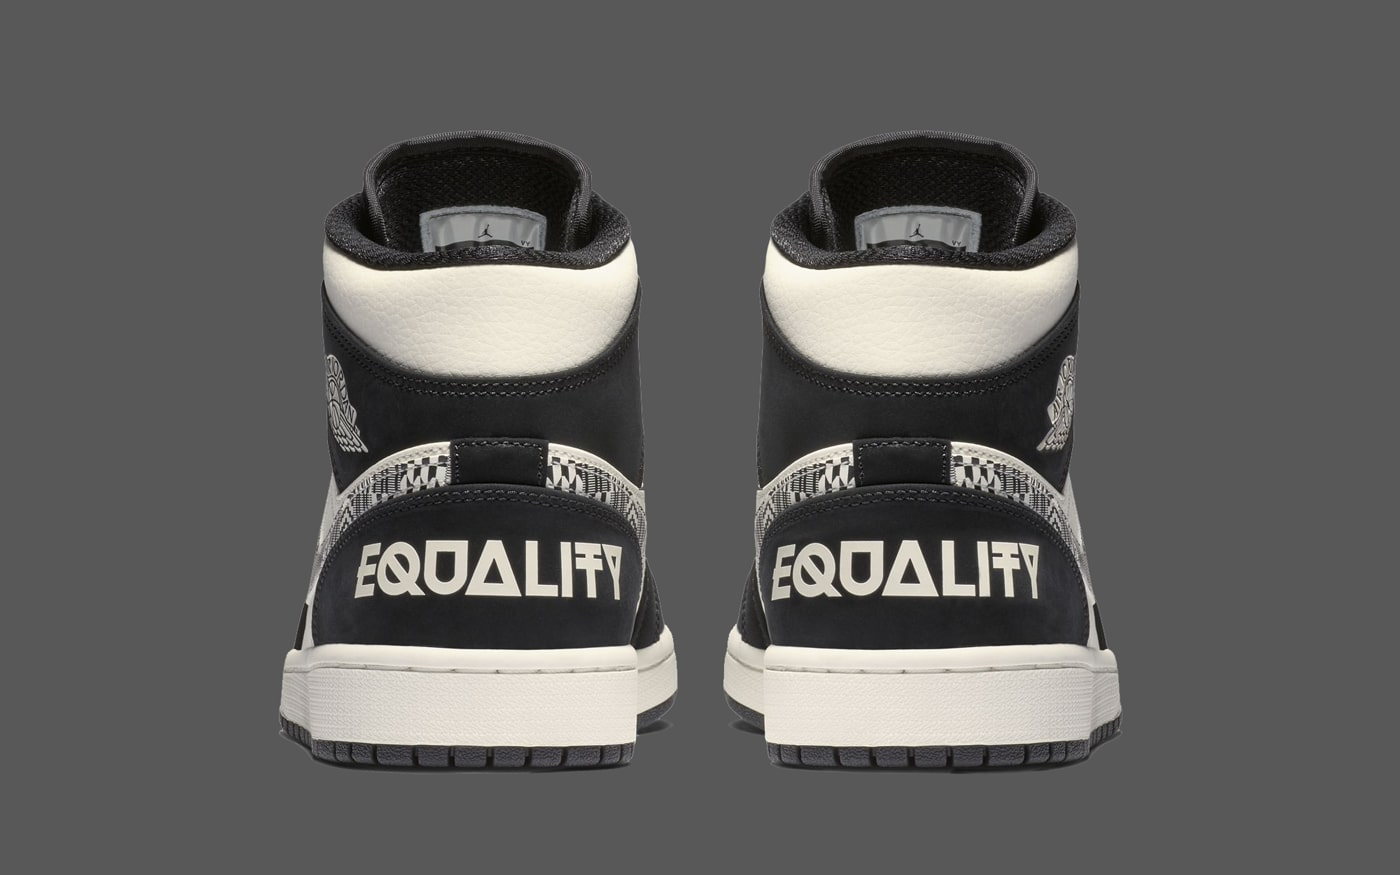 7268e2ac2bcb12 Jordan Brand Give the Jordan 1 Mid an Equal Opportunity - HOUSE OF ...